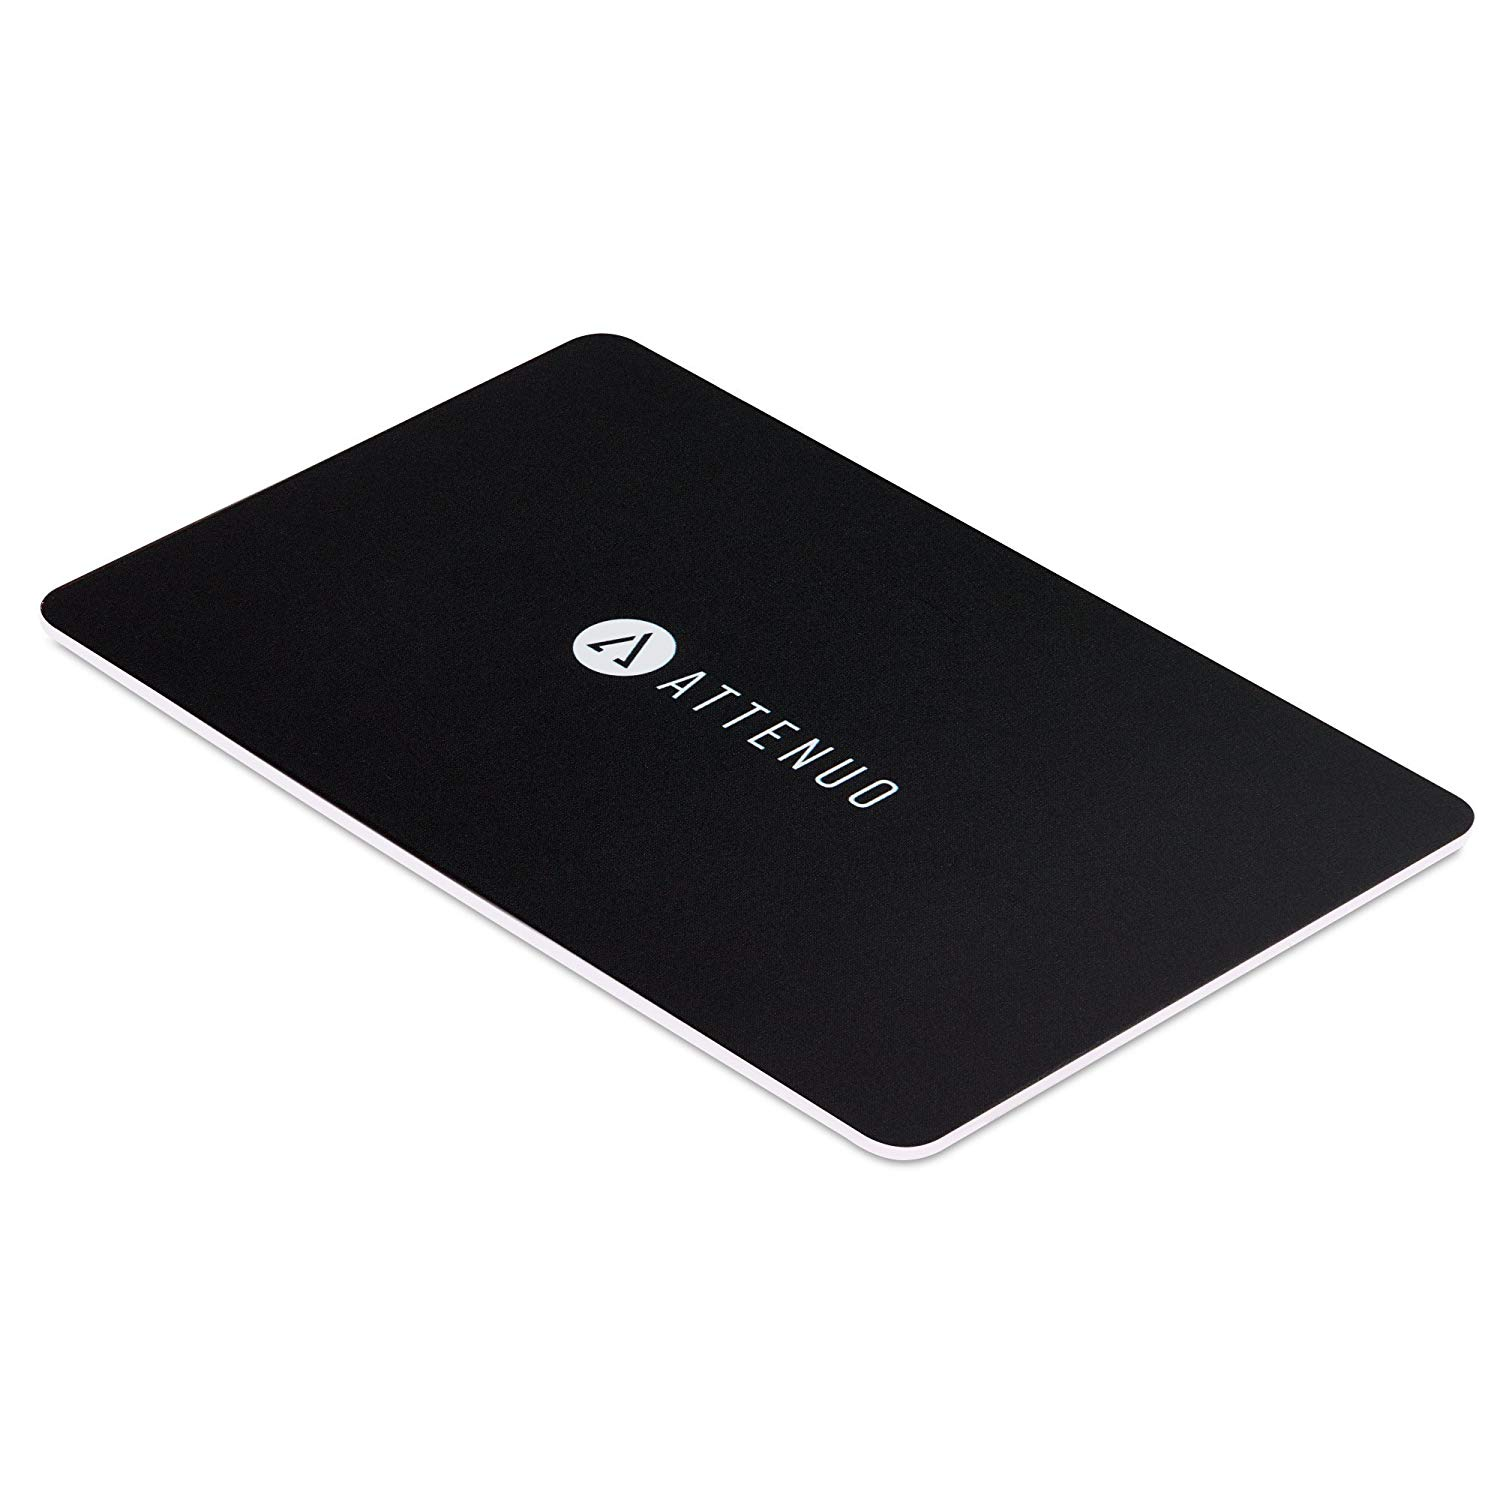 RFID/NFC Blocking Card by ATTENUO